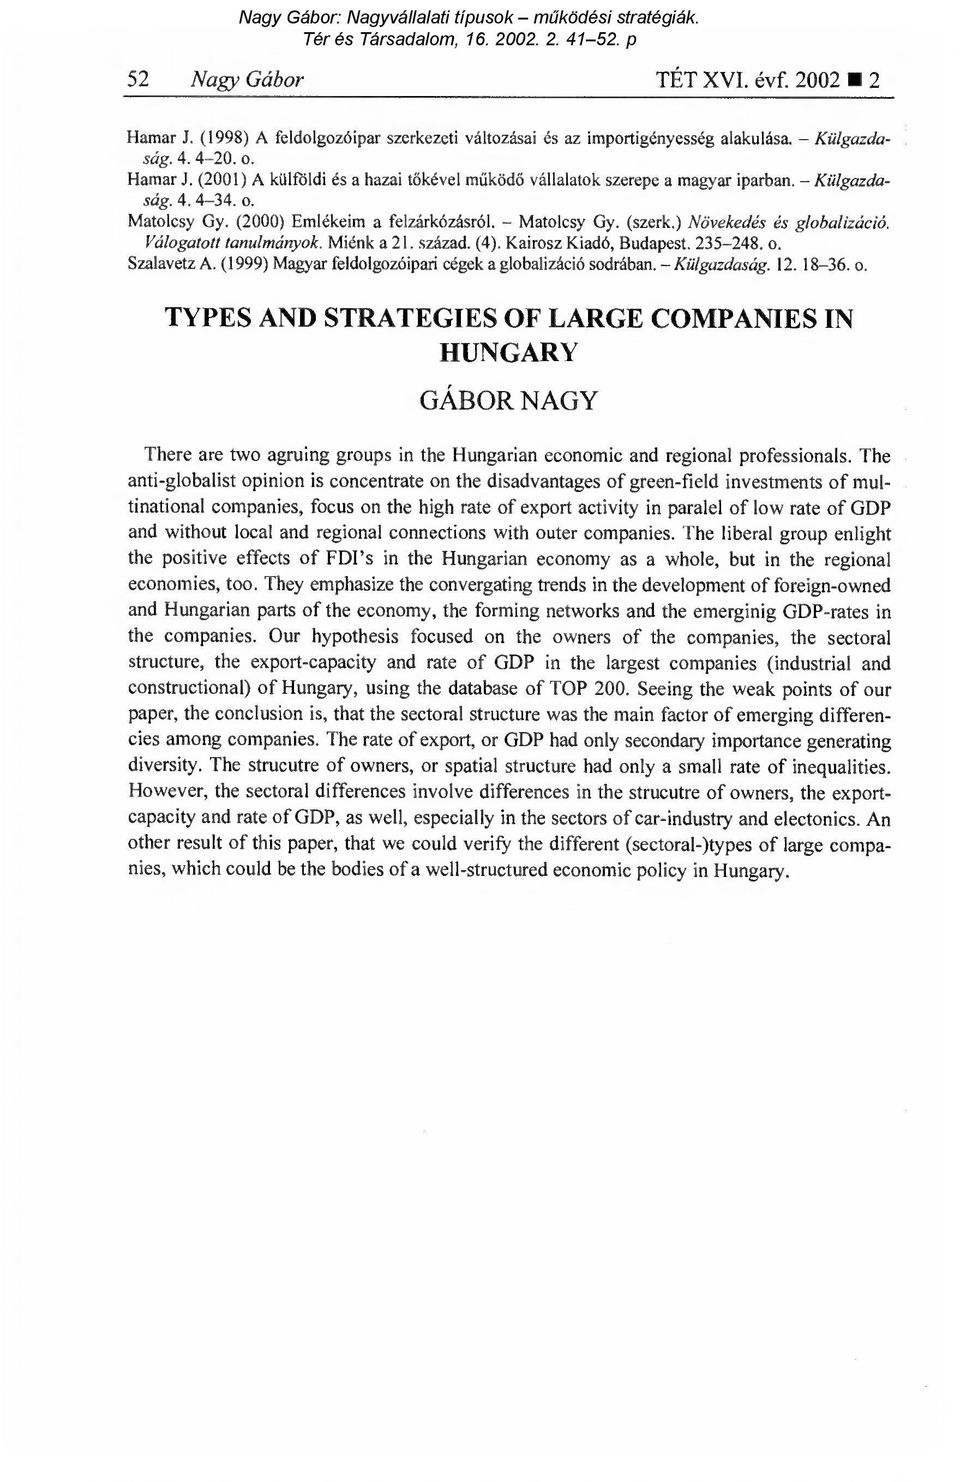 235-248. o. Szalavetz A. (1999) Magyar feldolgozóipari cégek a globalizáció sodrában. Külgazdaság. 12.18-36. o. TYPES AND STRATEGIES OF LARGE COMPANIES IN HUNGARY GÁBOR NAGY There are two agruing groups in the Hungarian economic and regional professionals.